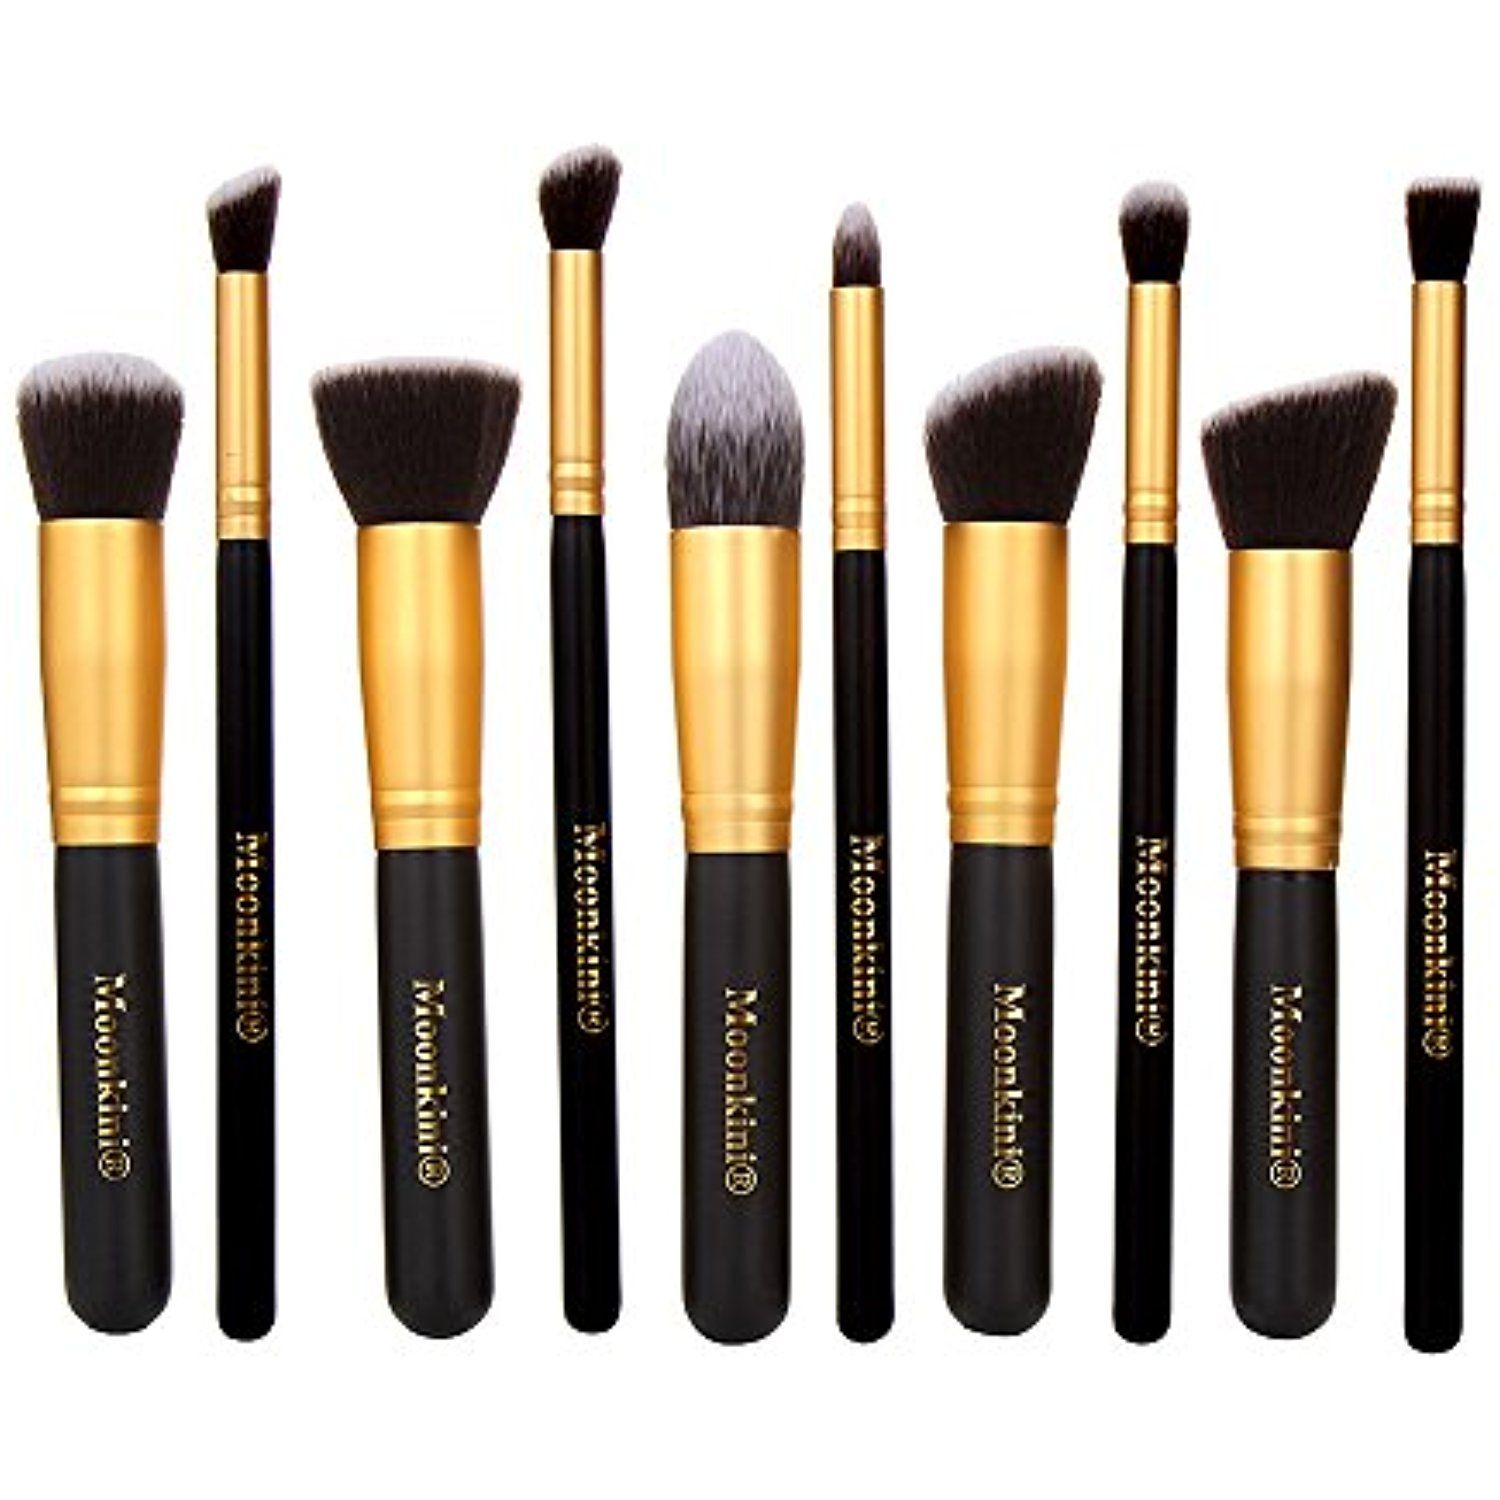 Moonkini 10 pcs Premium Synthetic Kabuki Makeup Brush Set